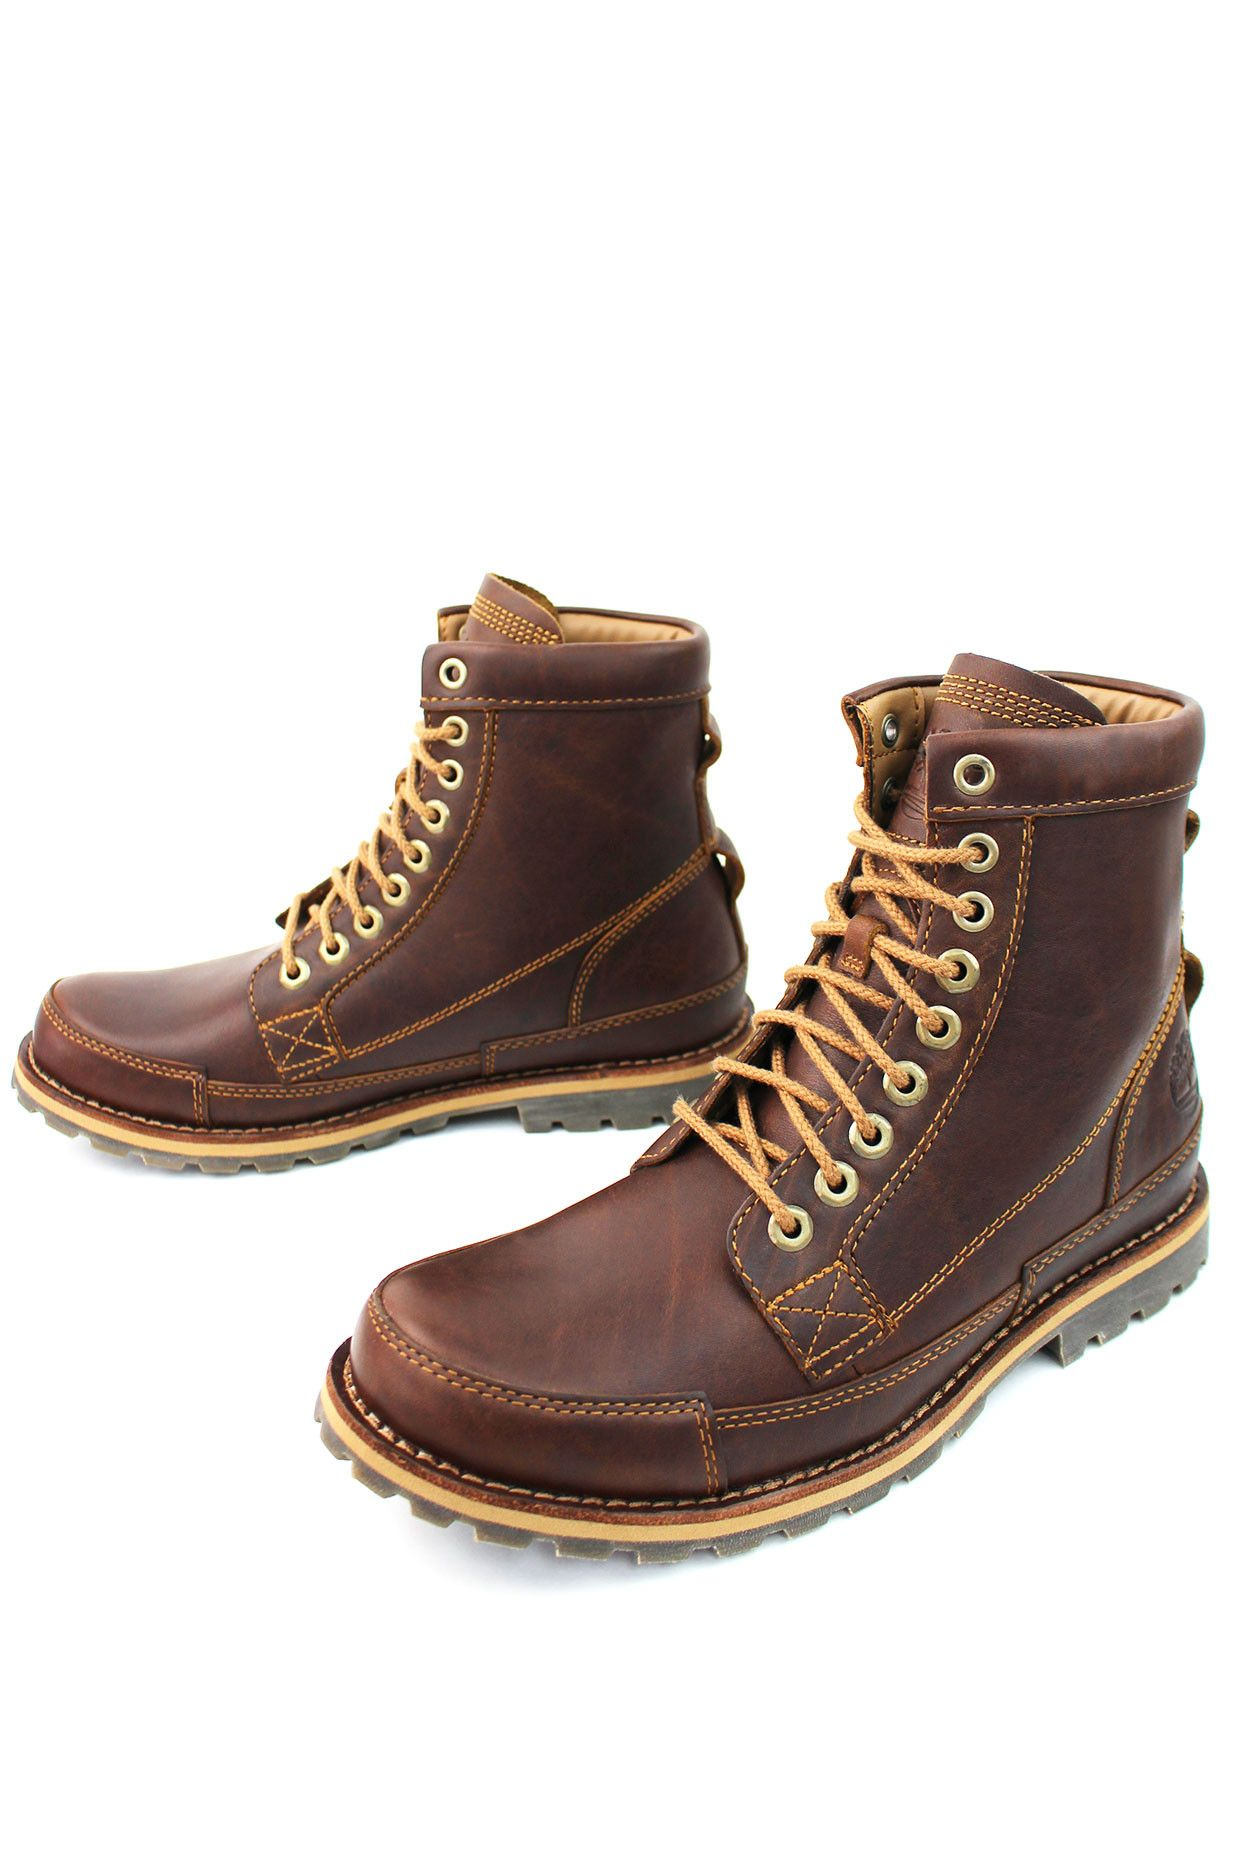 Men's Earthkeepers® Original Leather 6-Inch Boots